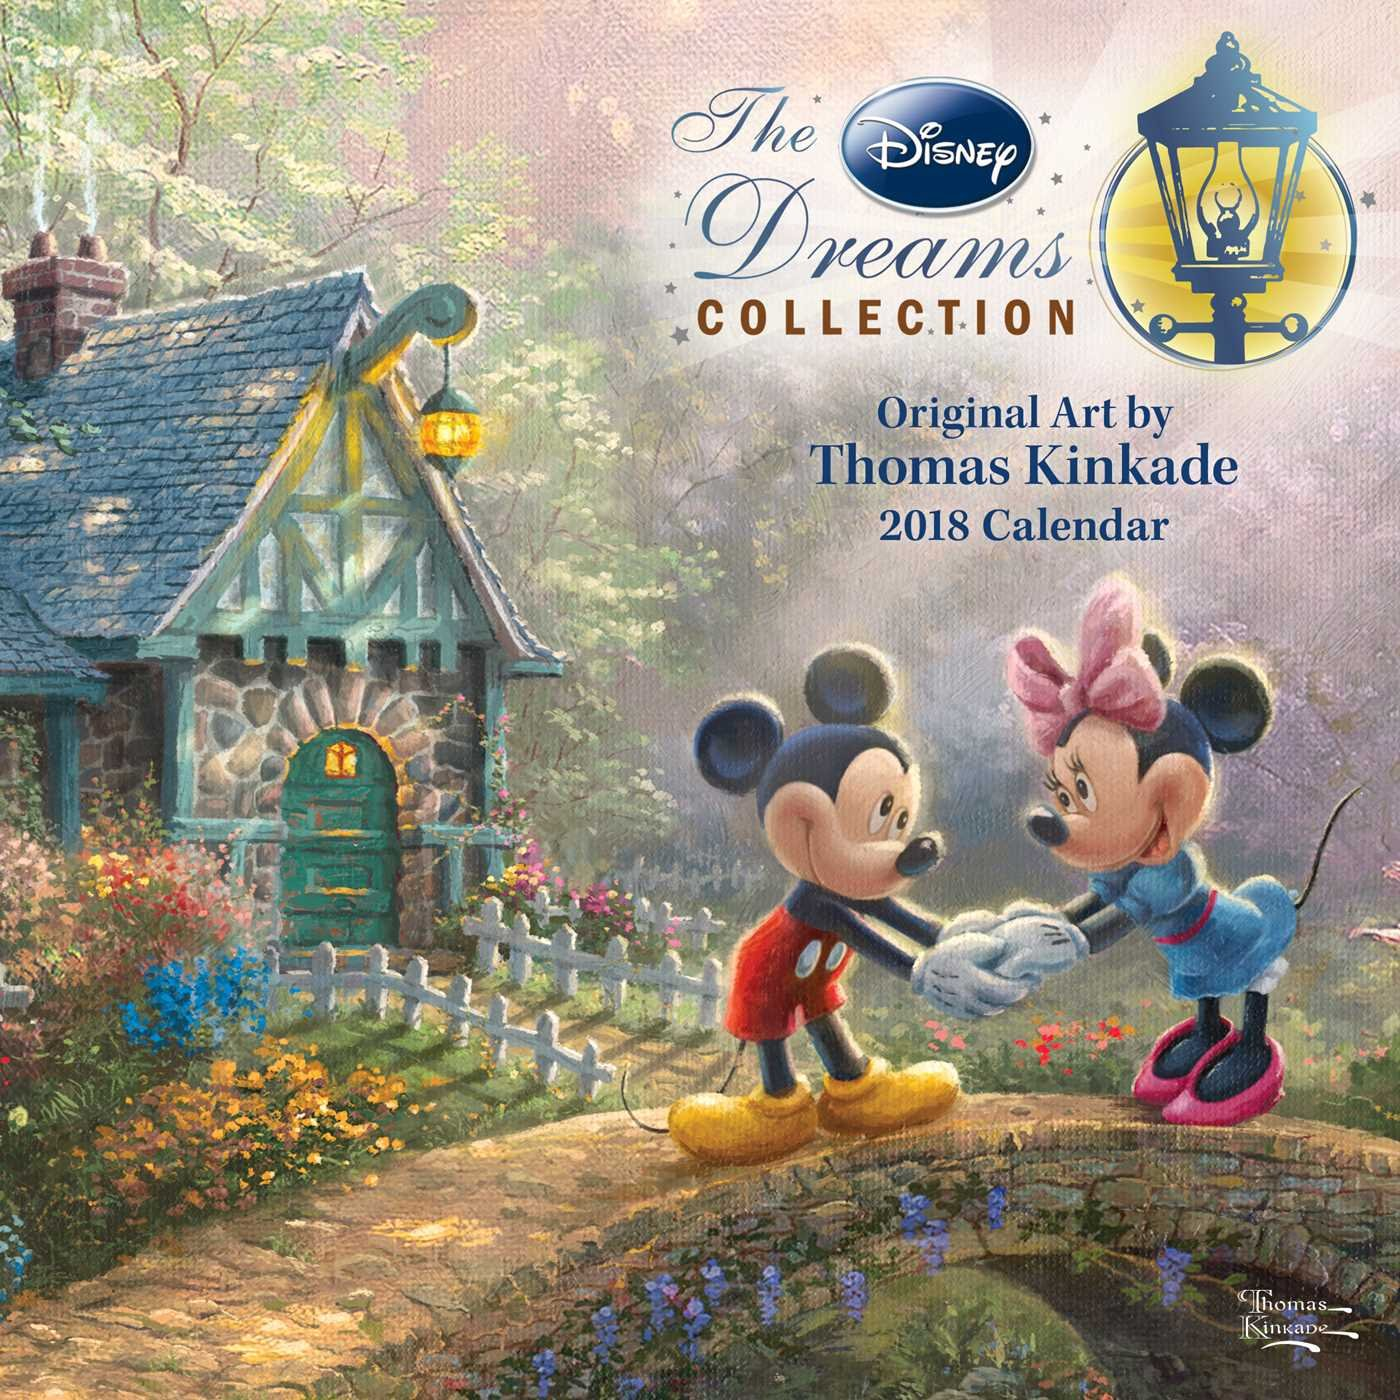 Amazon.com: Thomas Kinkade: The Disney Dreams Collection ...